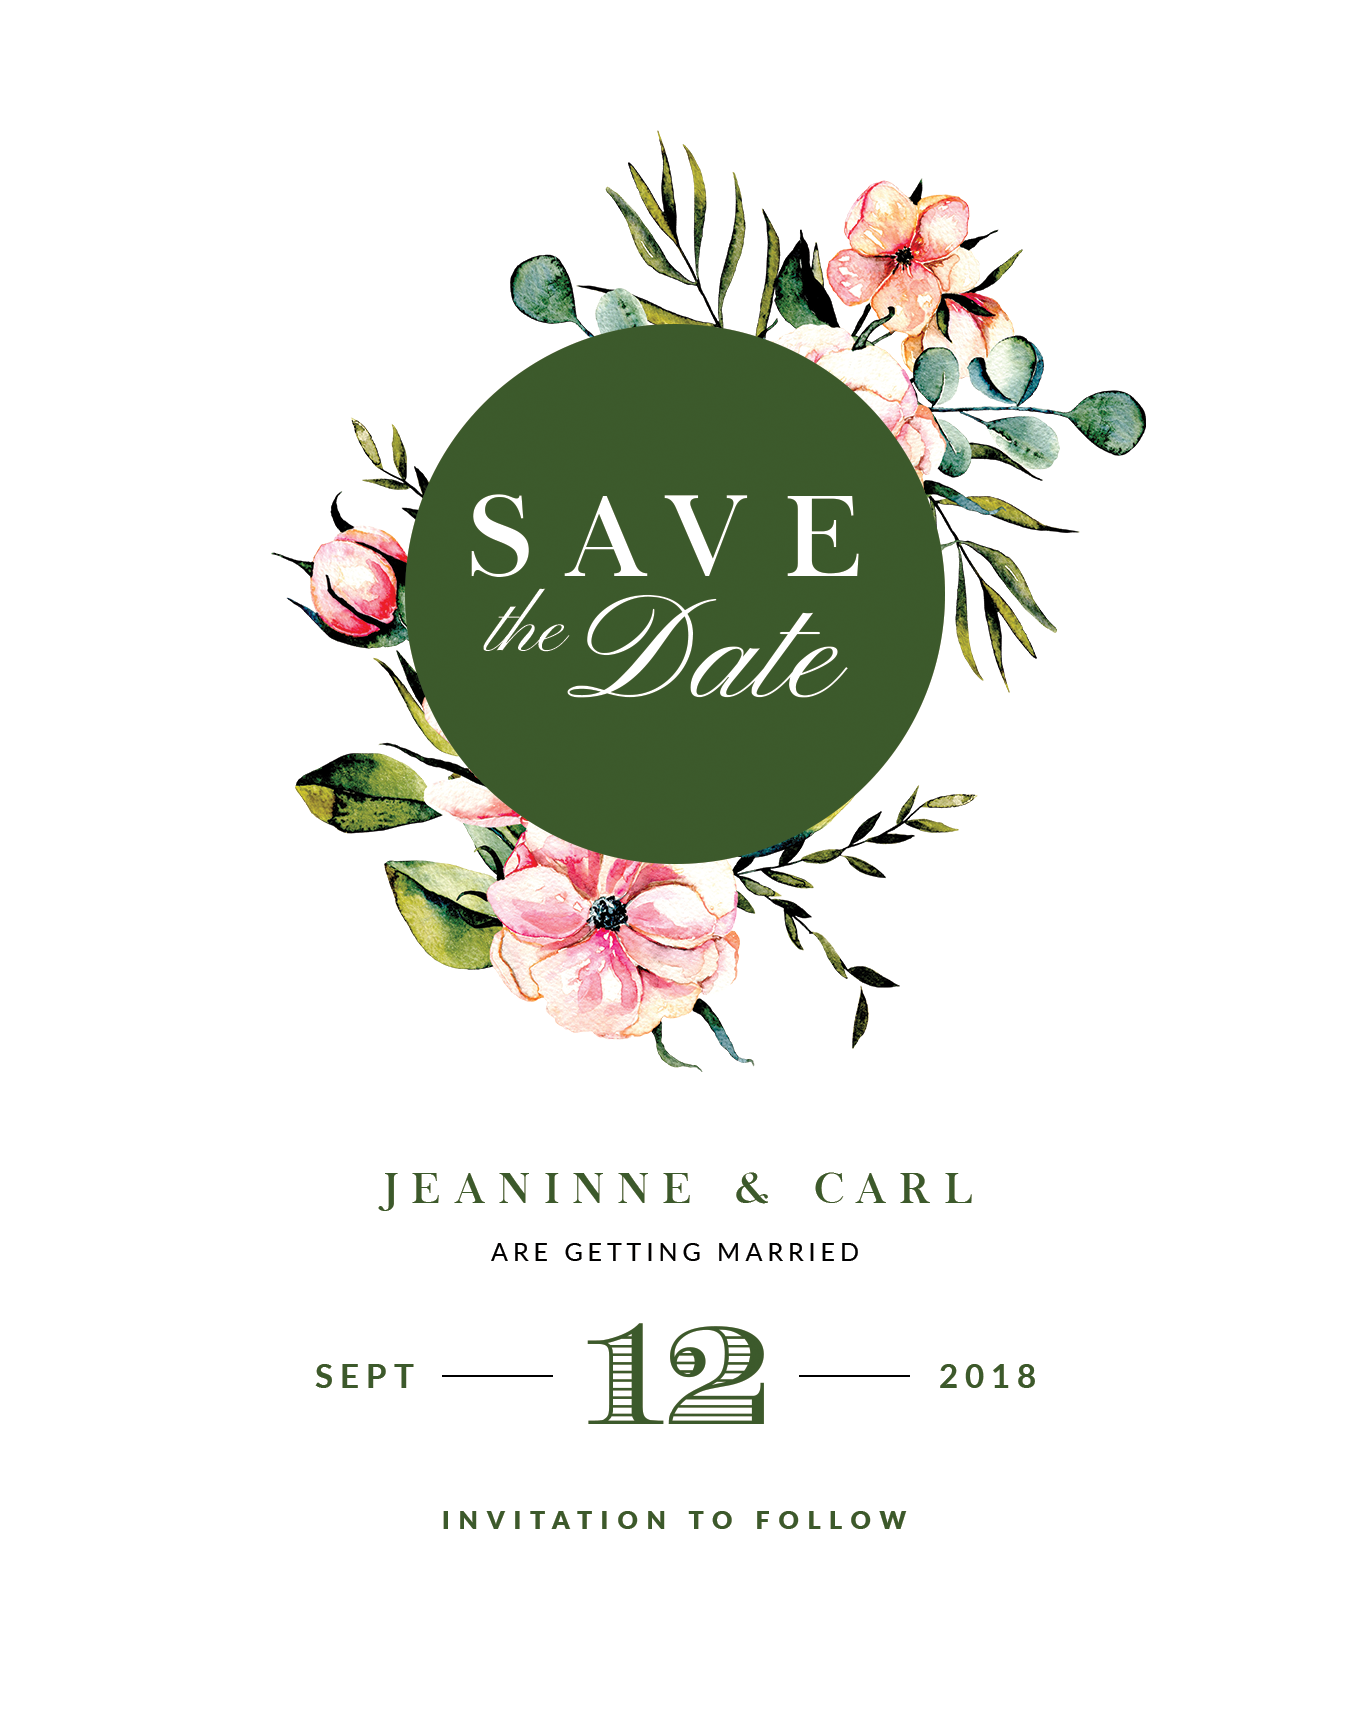 Save The Date - US A2 CARD SIZE - COLOR 1_RGB.png